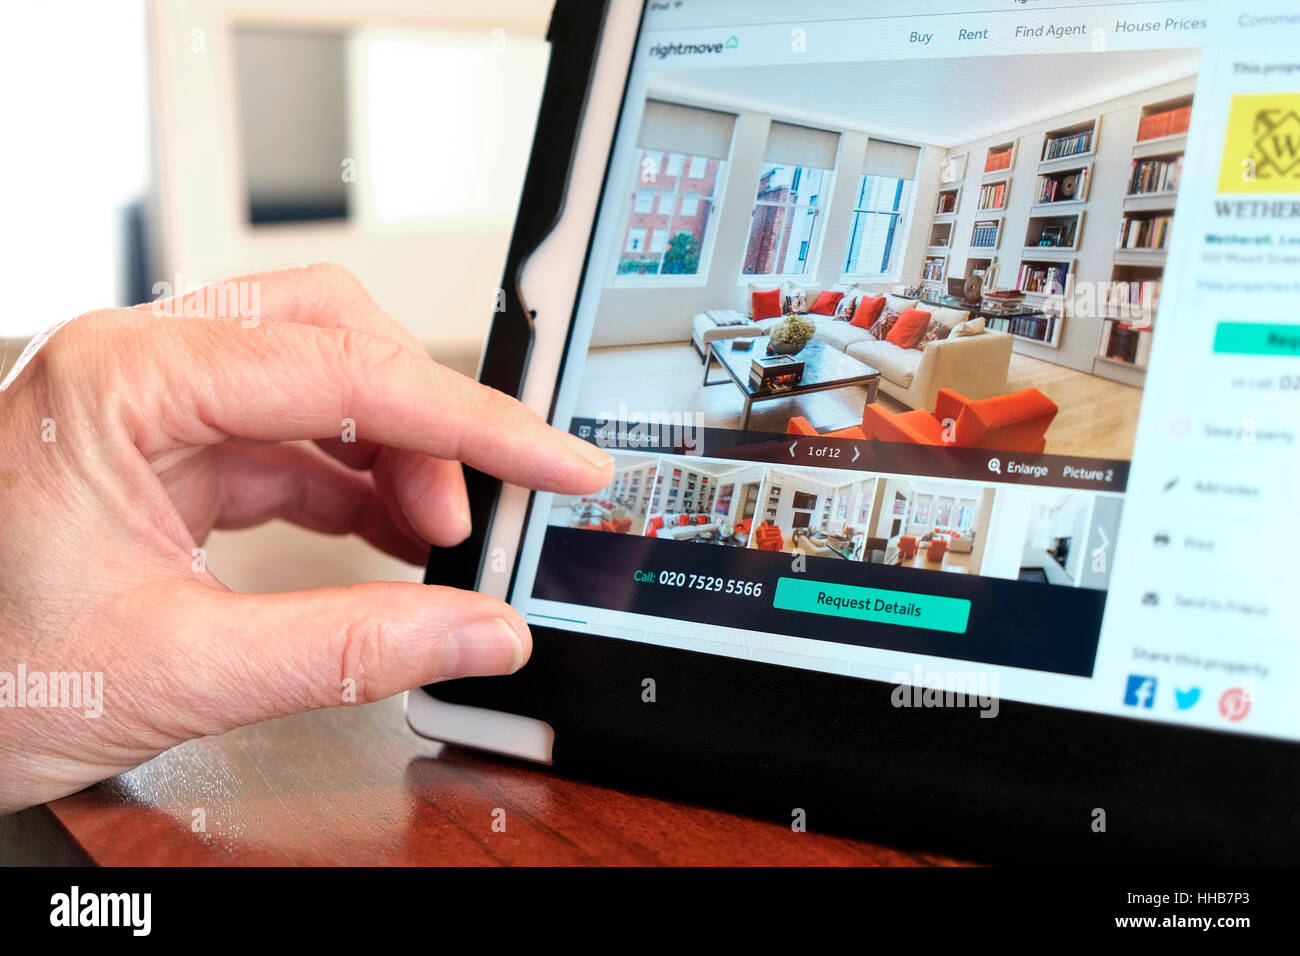 online property search using tablet computer - Stock Image